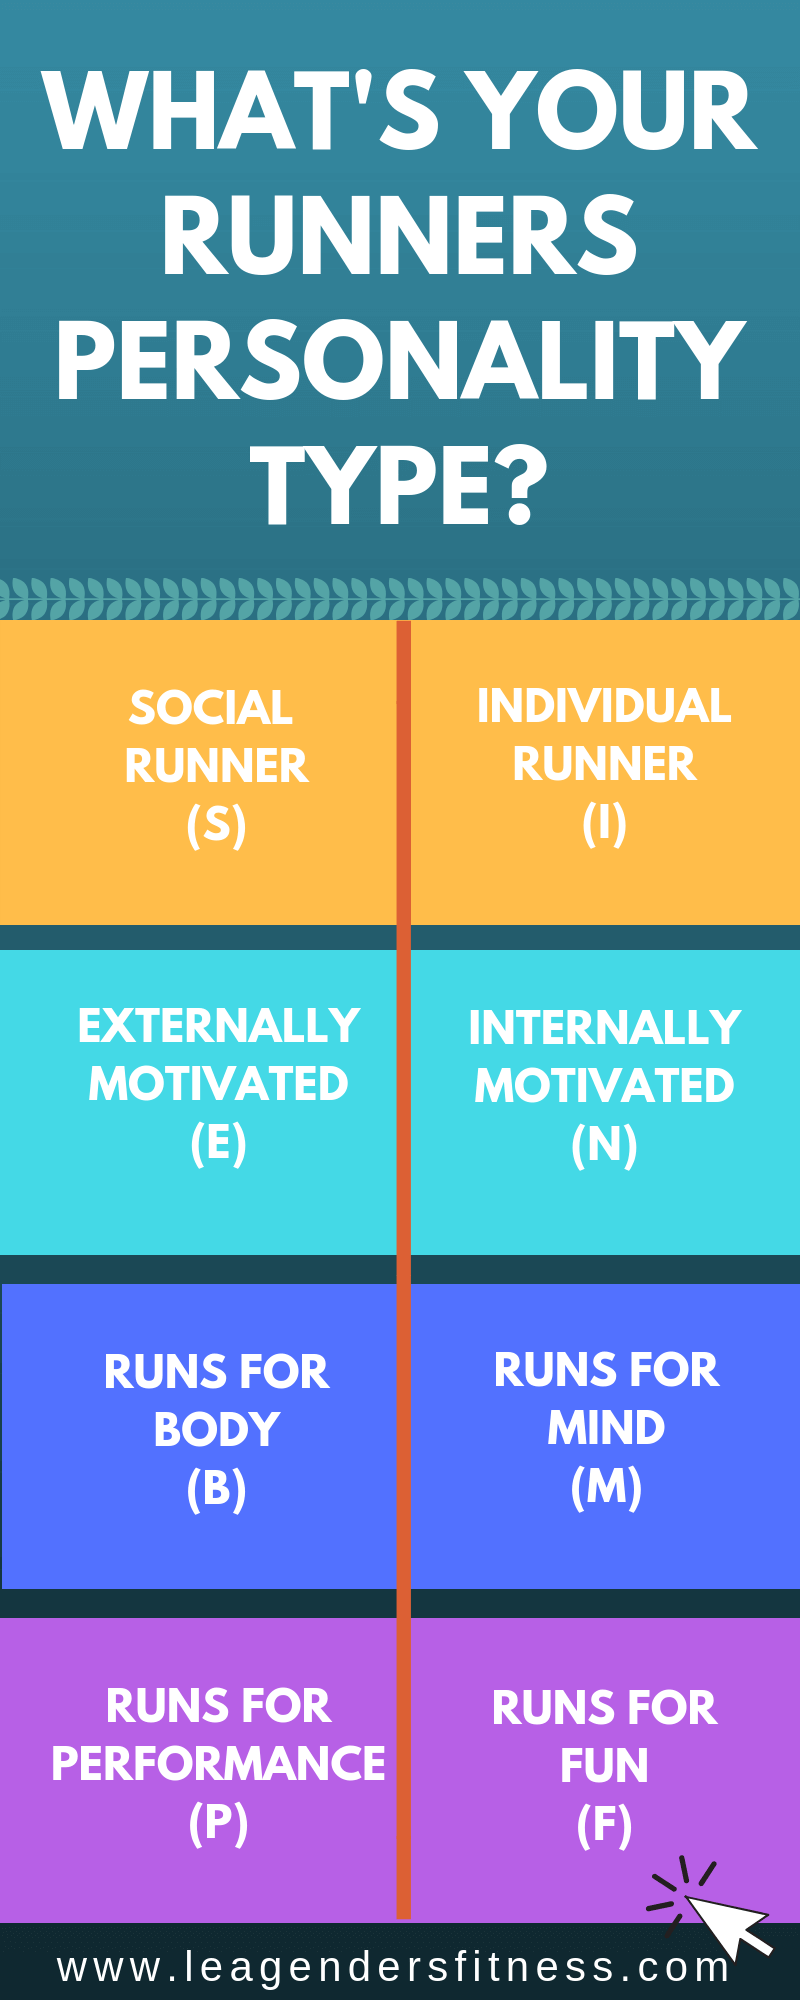 what's your runners personality type?